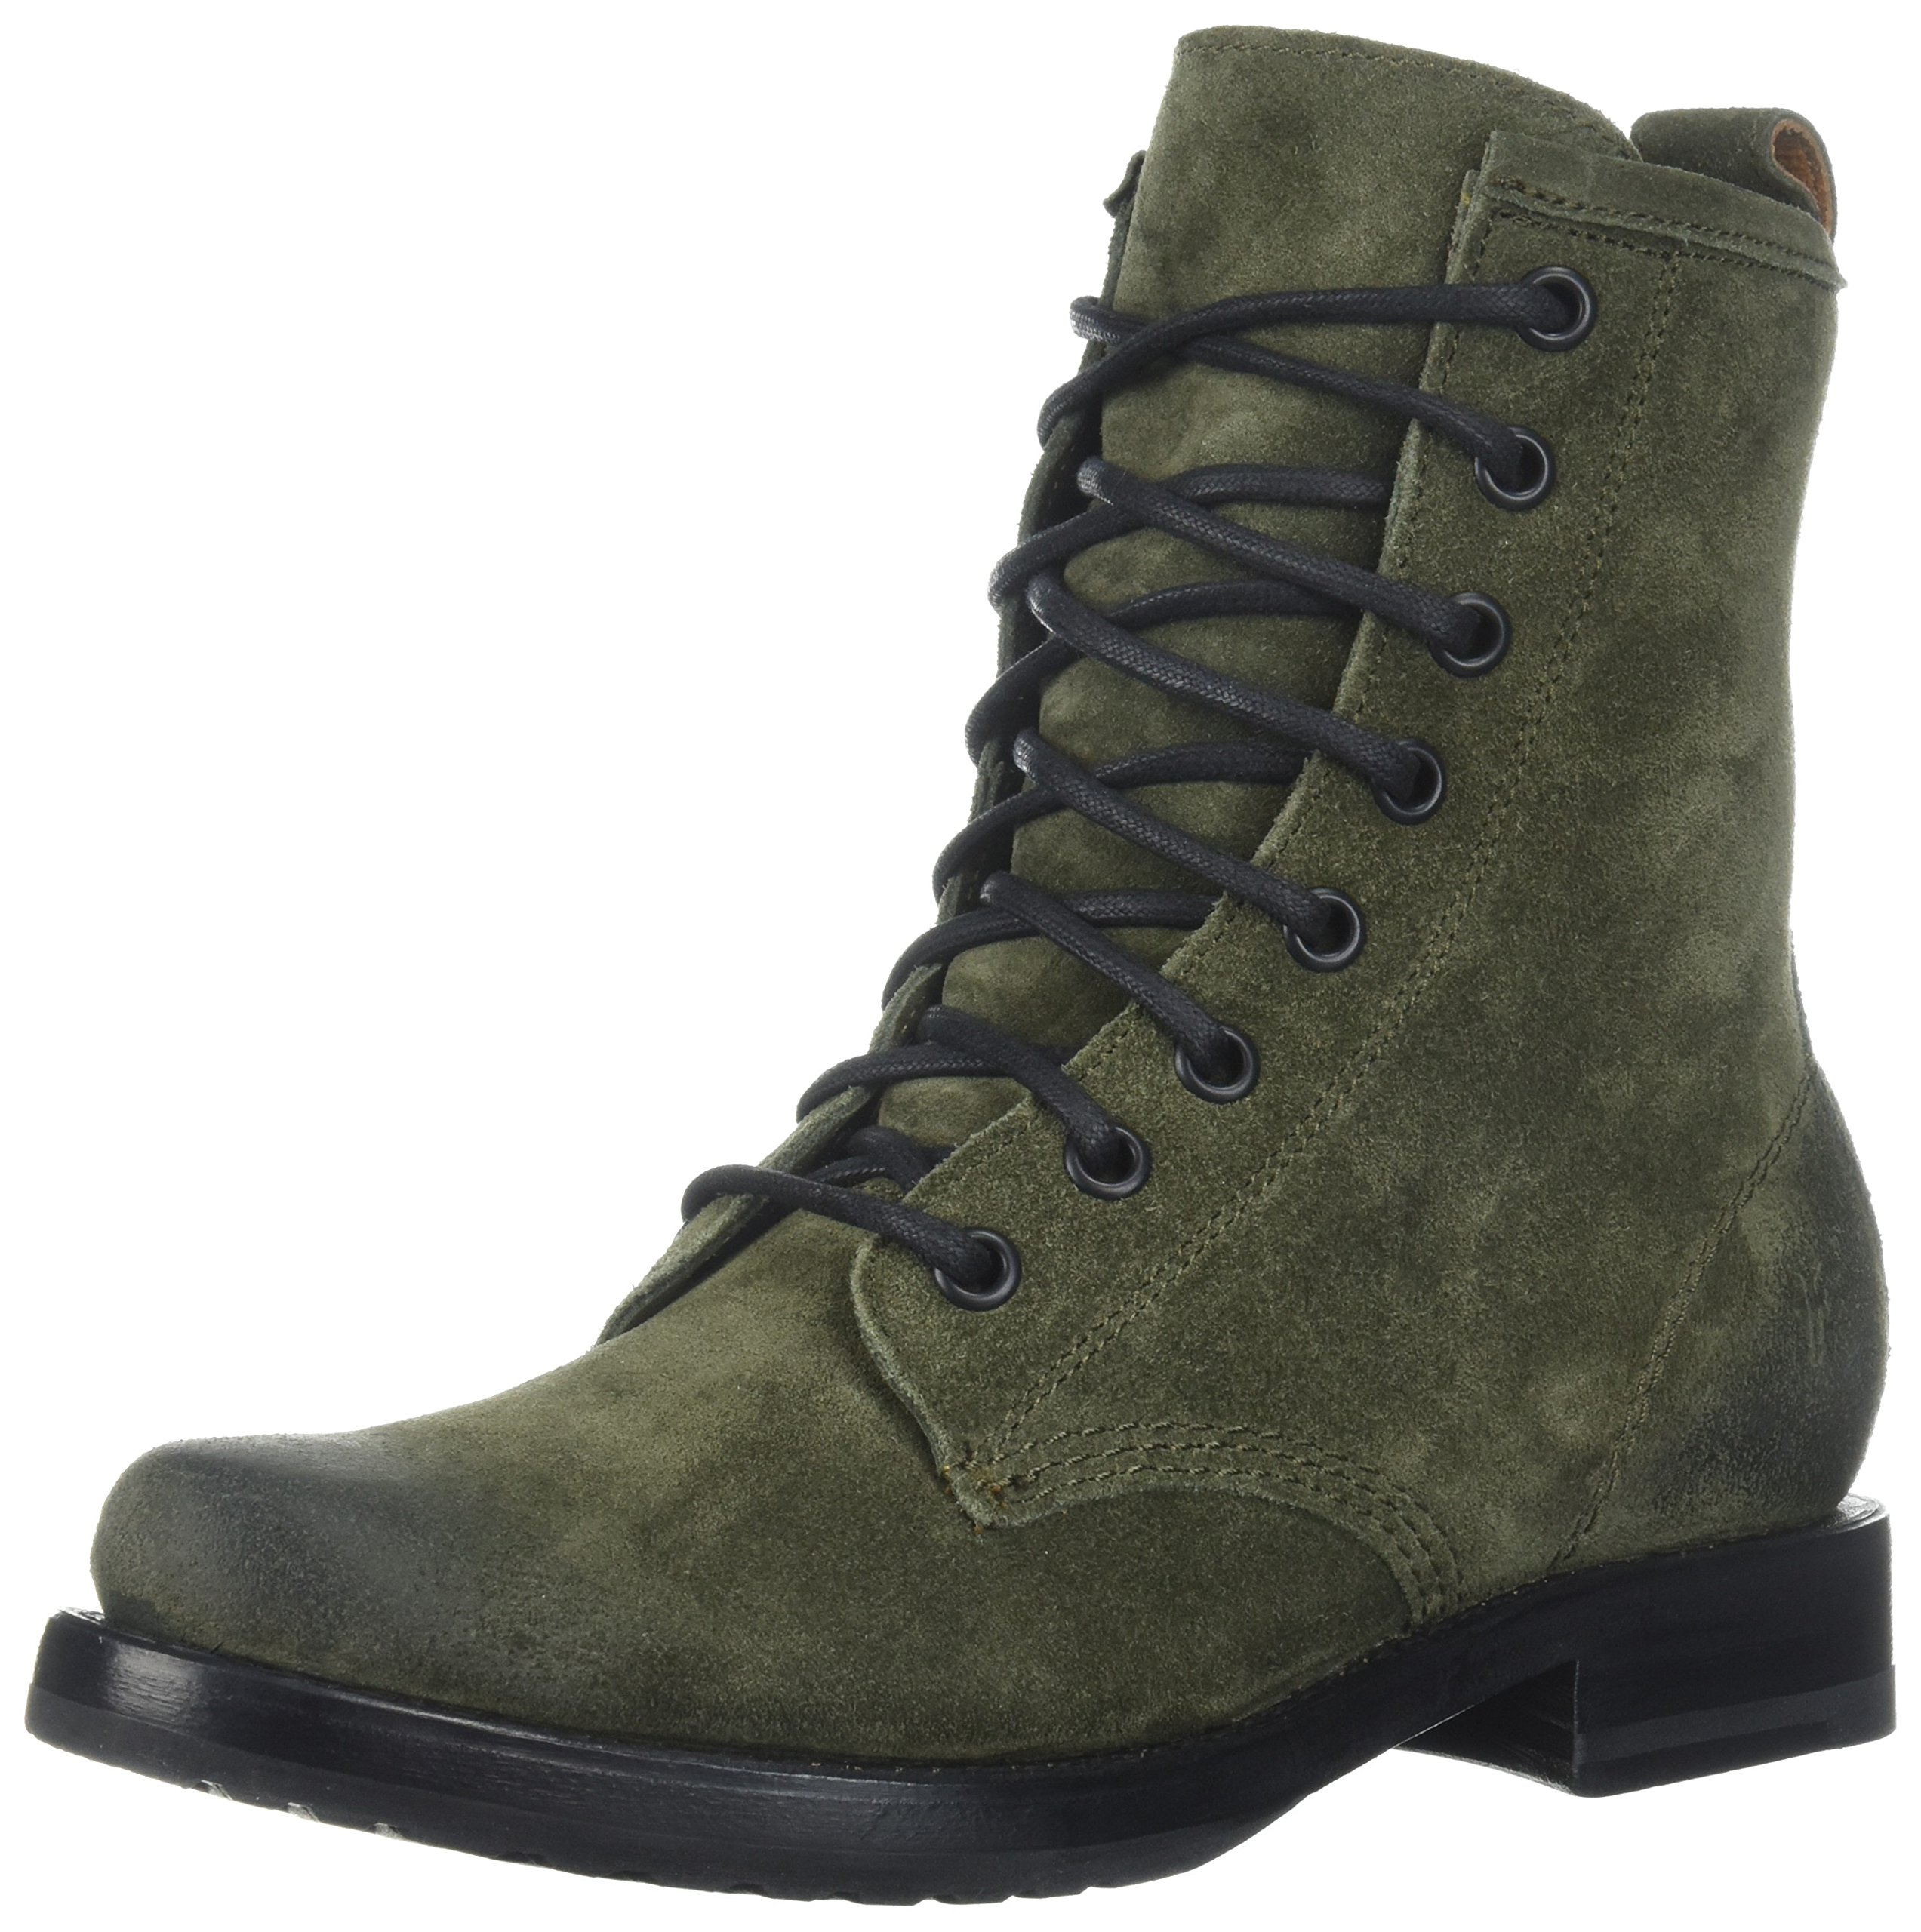 FRYE Women's Veronica Combat Boot, Forest Soft Oiled Suede, 8.5 M US